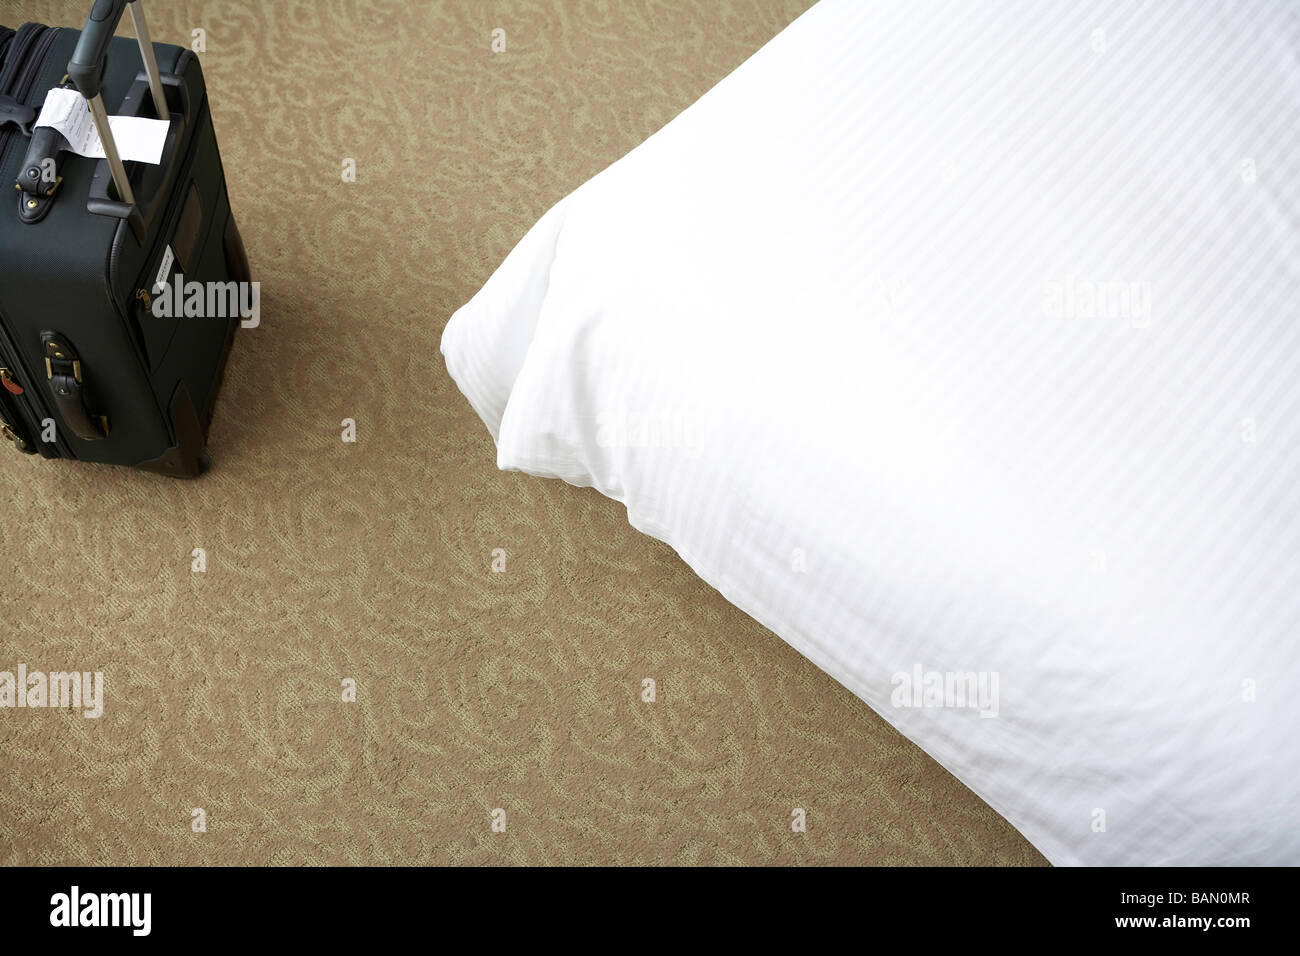 Suitcase in front of a bed - Stock Image